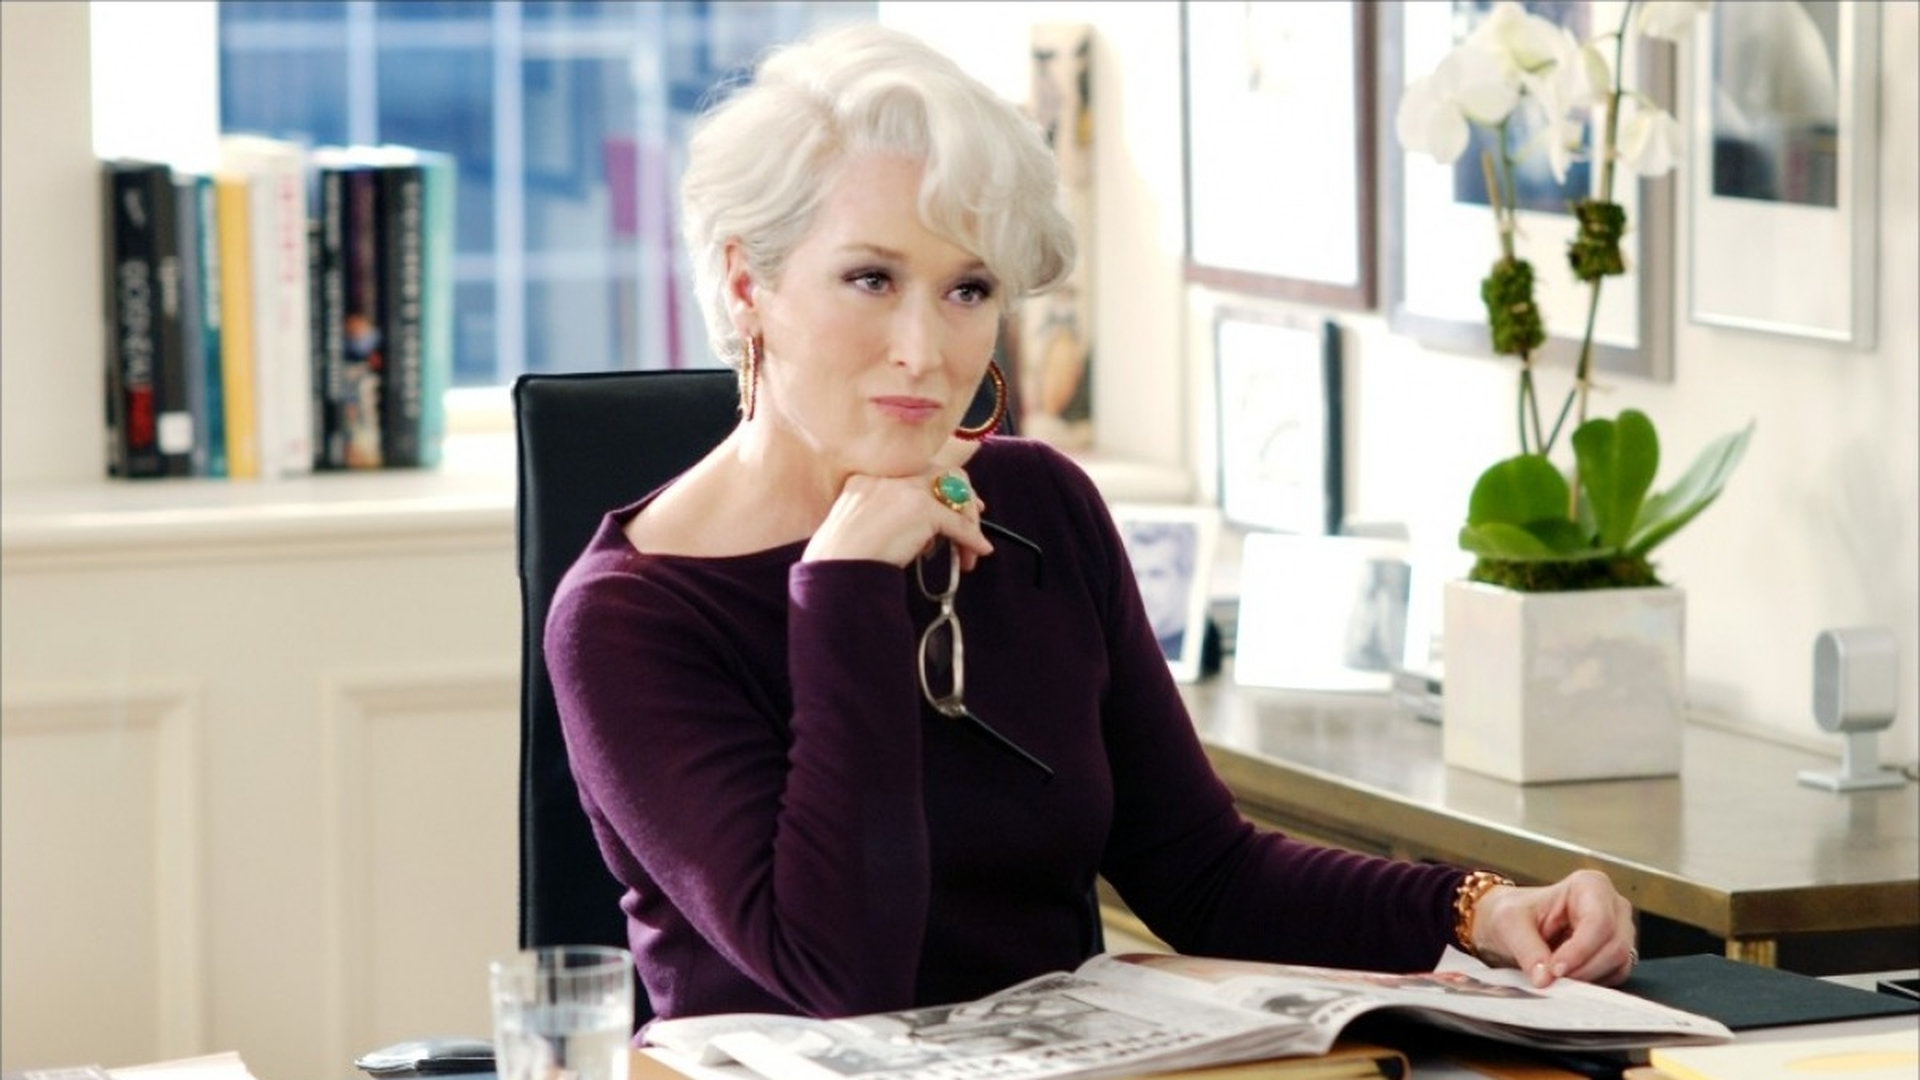 The Sage's shadow in film: Miranda Priestly, The Devil Wears Prada. Loosely based on the real-life editor of Vogue magazine, Priestly's strategic alliances in the fashion industry and no-nonsense attitude allow her to thrive in a ruthlessly competitive industry. Her over identification with the sage make her a cruel boss and insensitive companion.